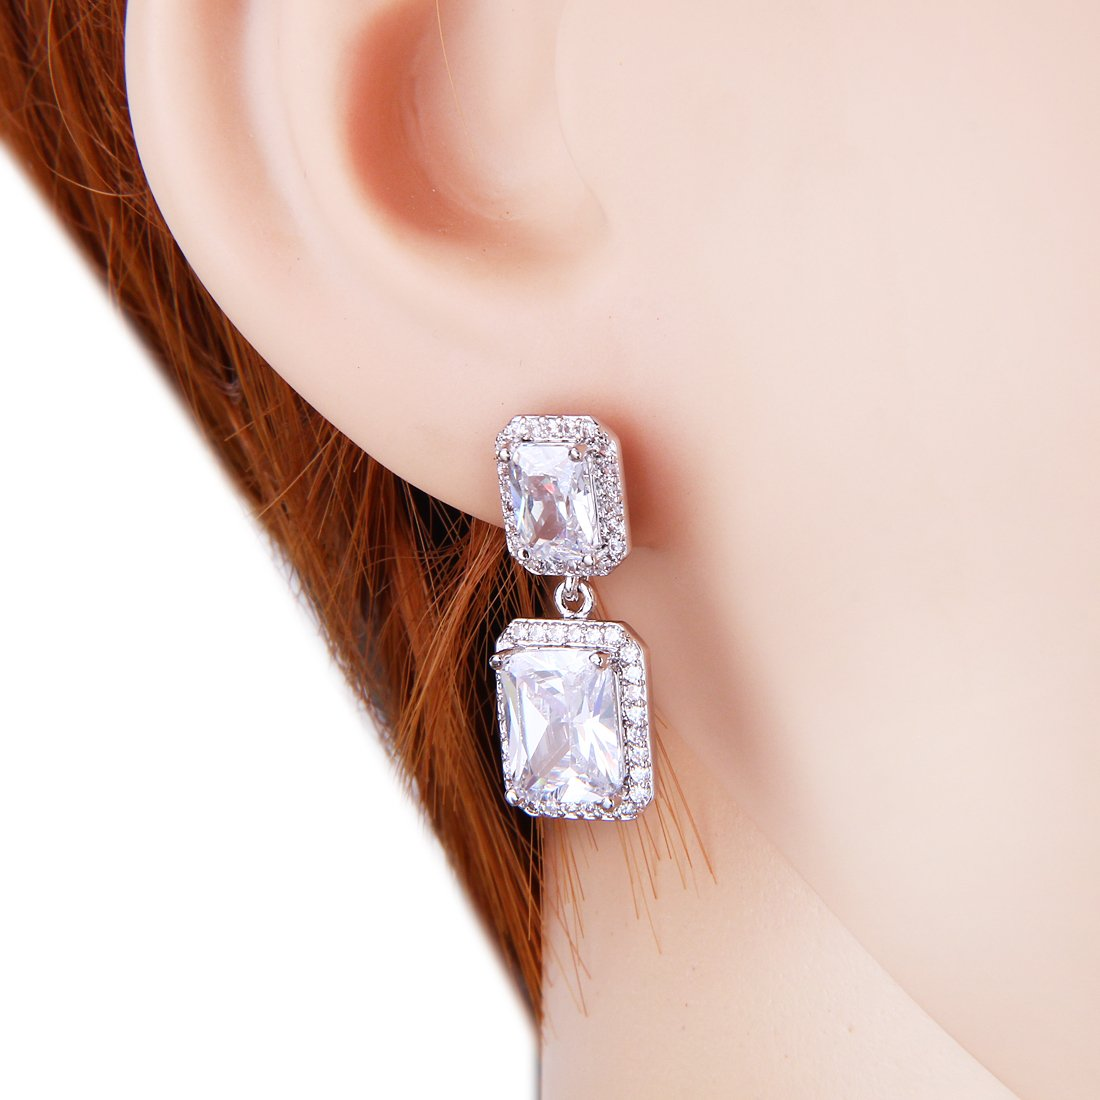 Wordless Love Jewelry Sets for Women Cubic Zirconia Party Earrings Pendant Necklace Set by Wordless Love (Image #3)